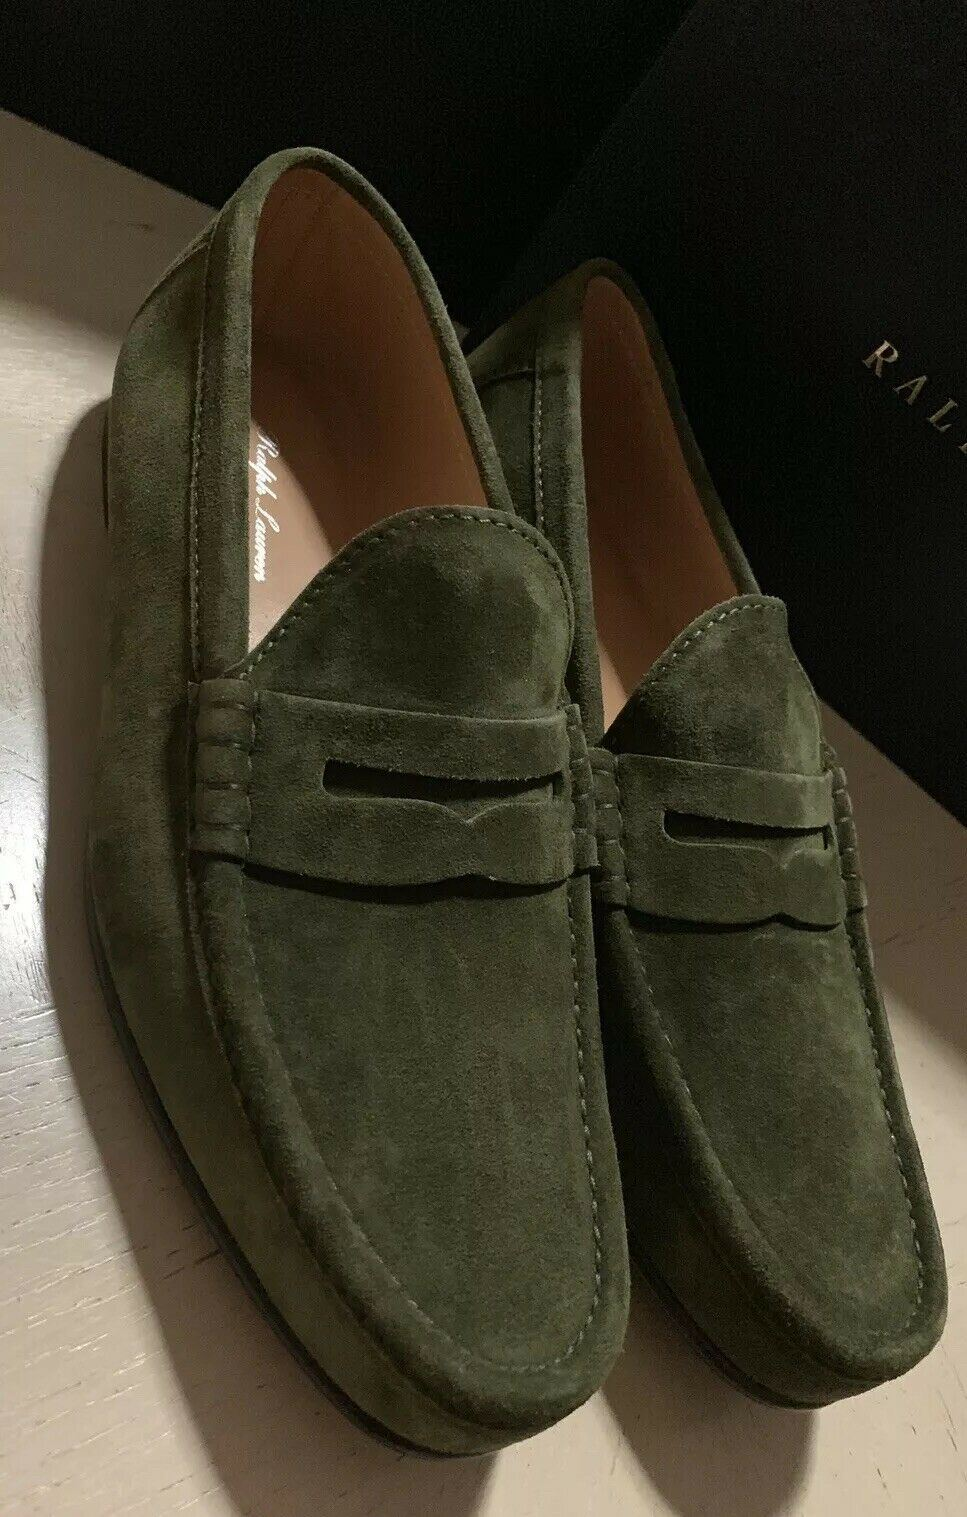 New $895 Men's Ralph Lauren Purple Label Suede Loafers Shoes Green 9 US Italy